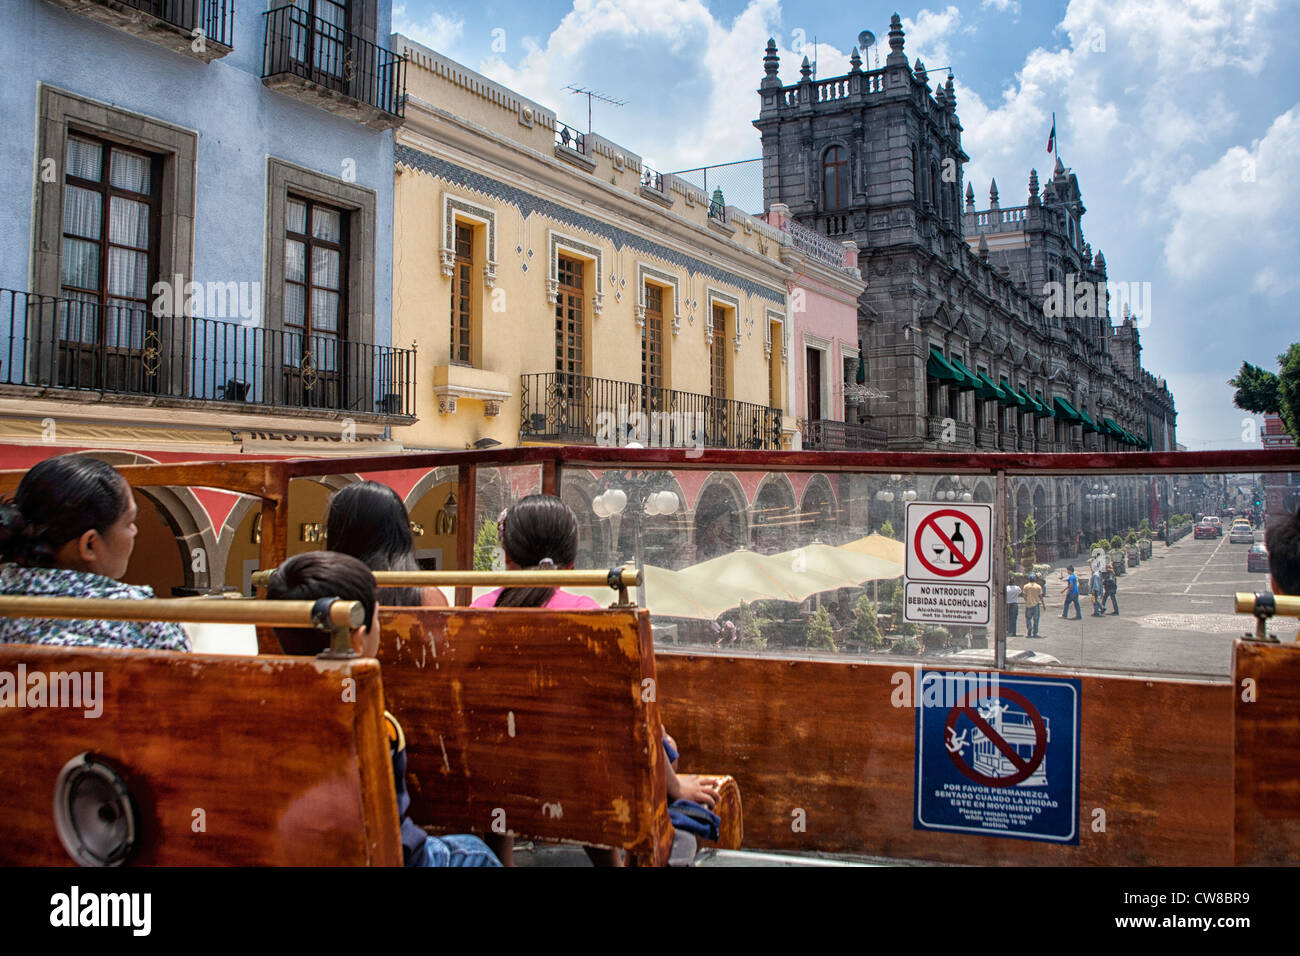 Tour Bus and Palacio de Gobierno, Puebla, Mexico Stock Photo